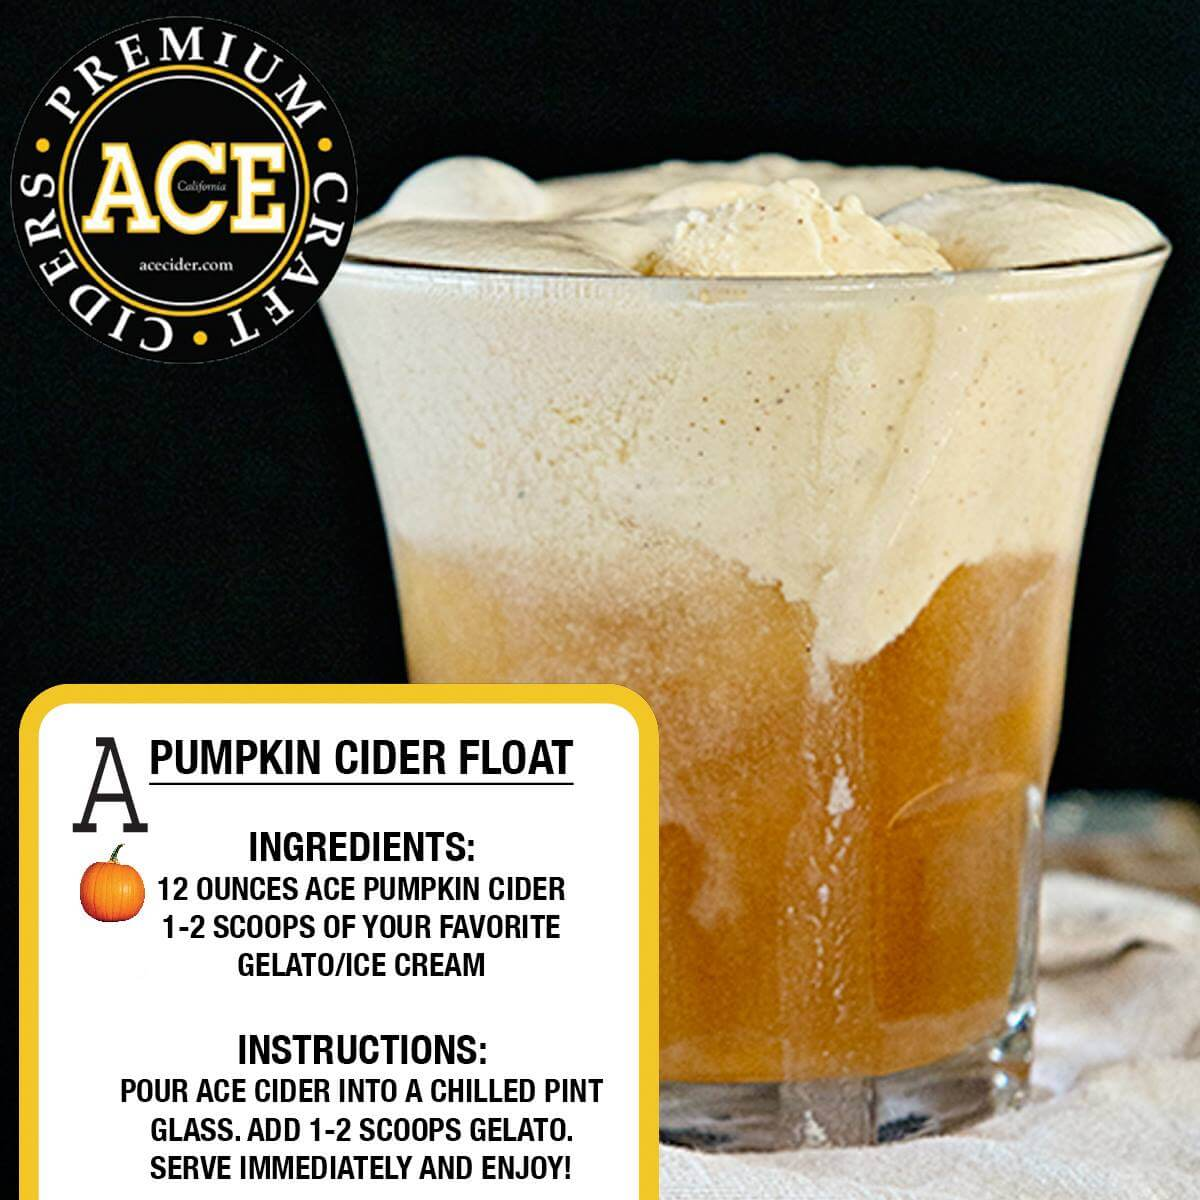 ACE Pumpkin Cider Float